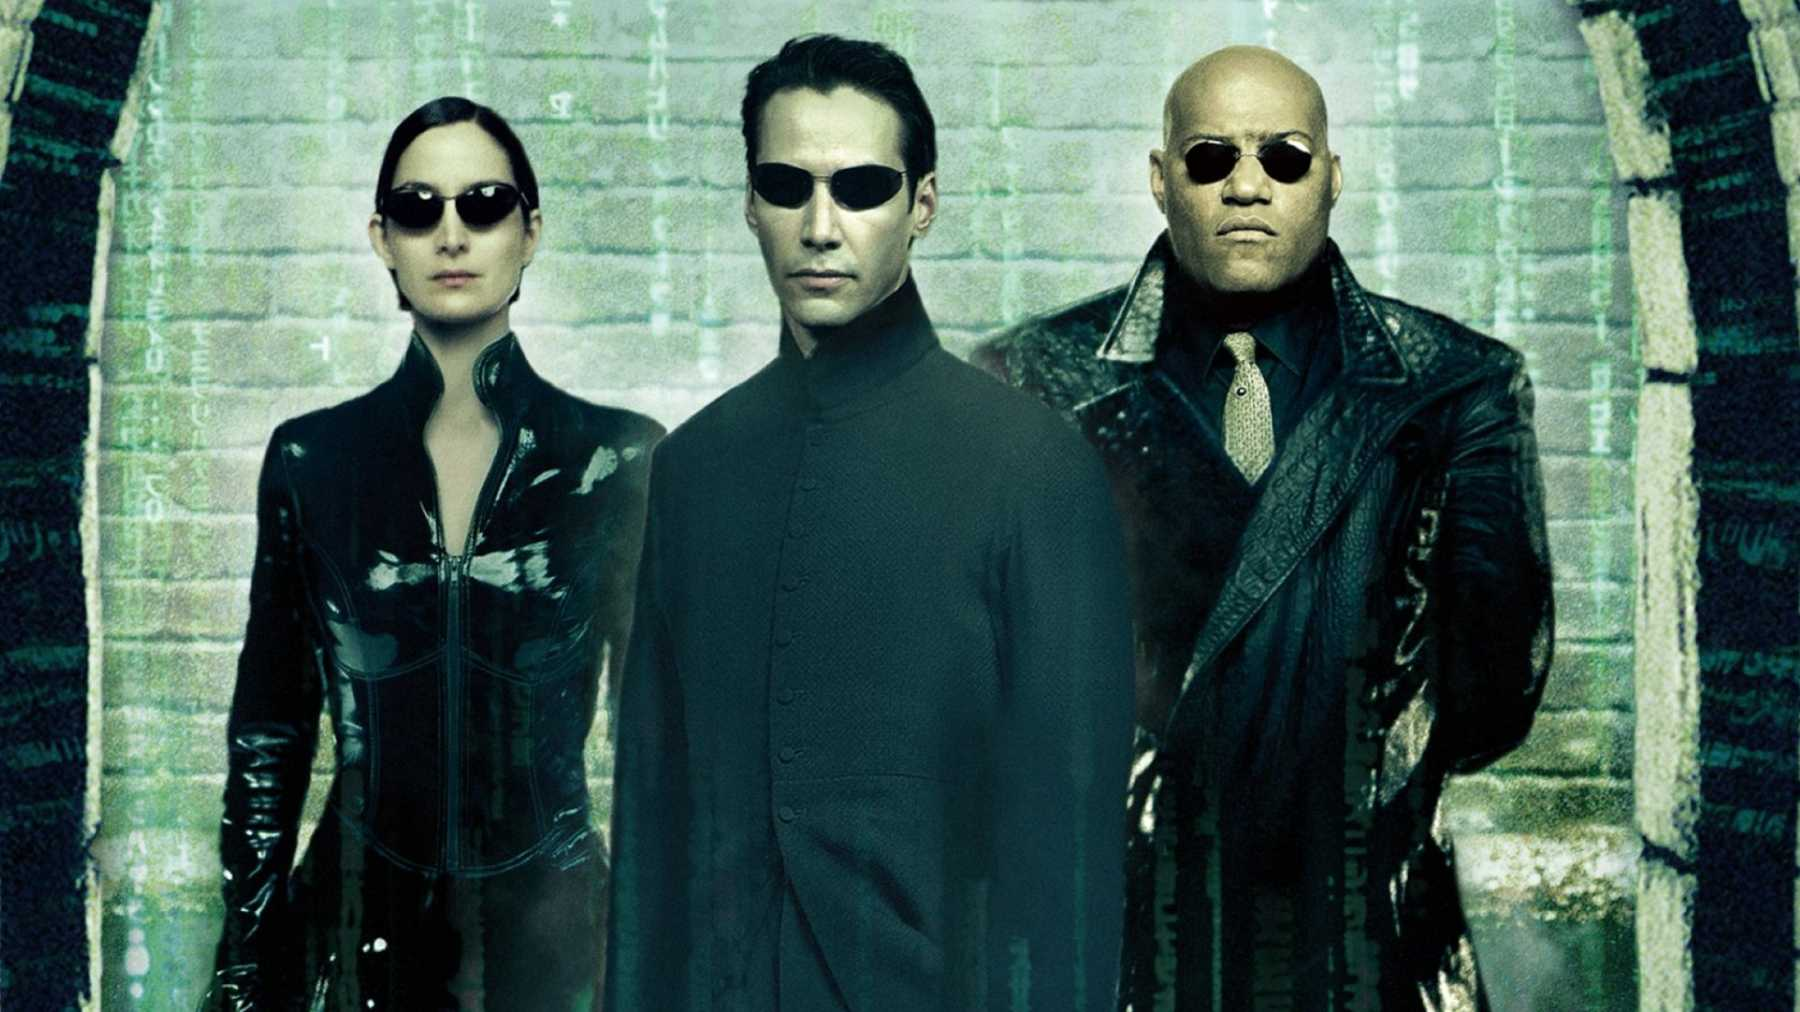 The Wachowskis Said To Be Working On New Matrix Project | Movies ...